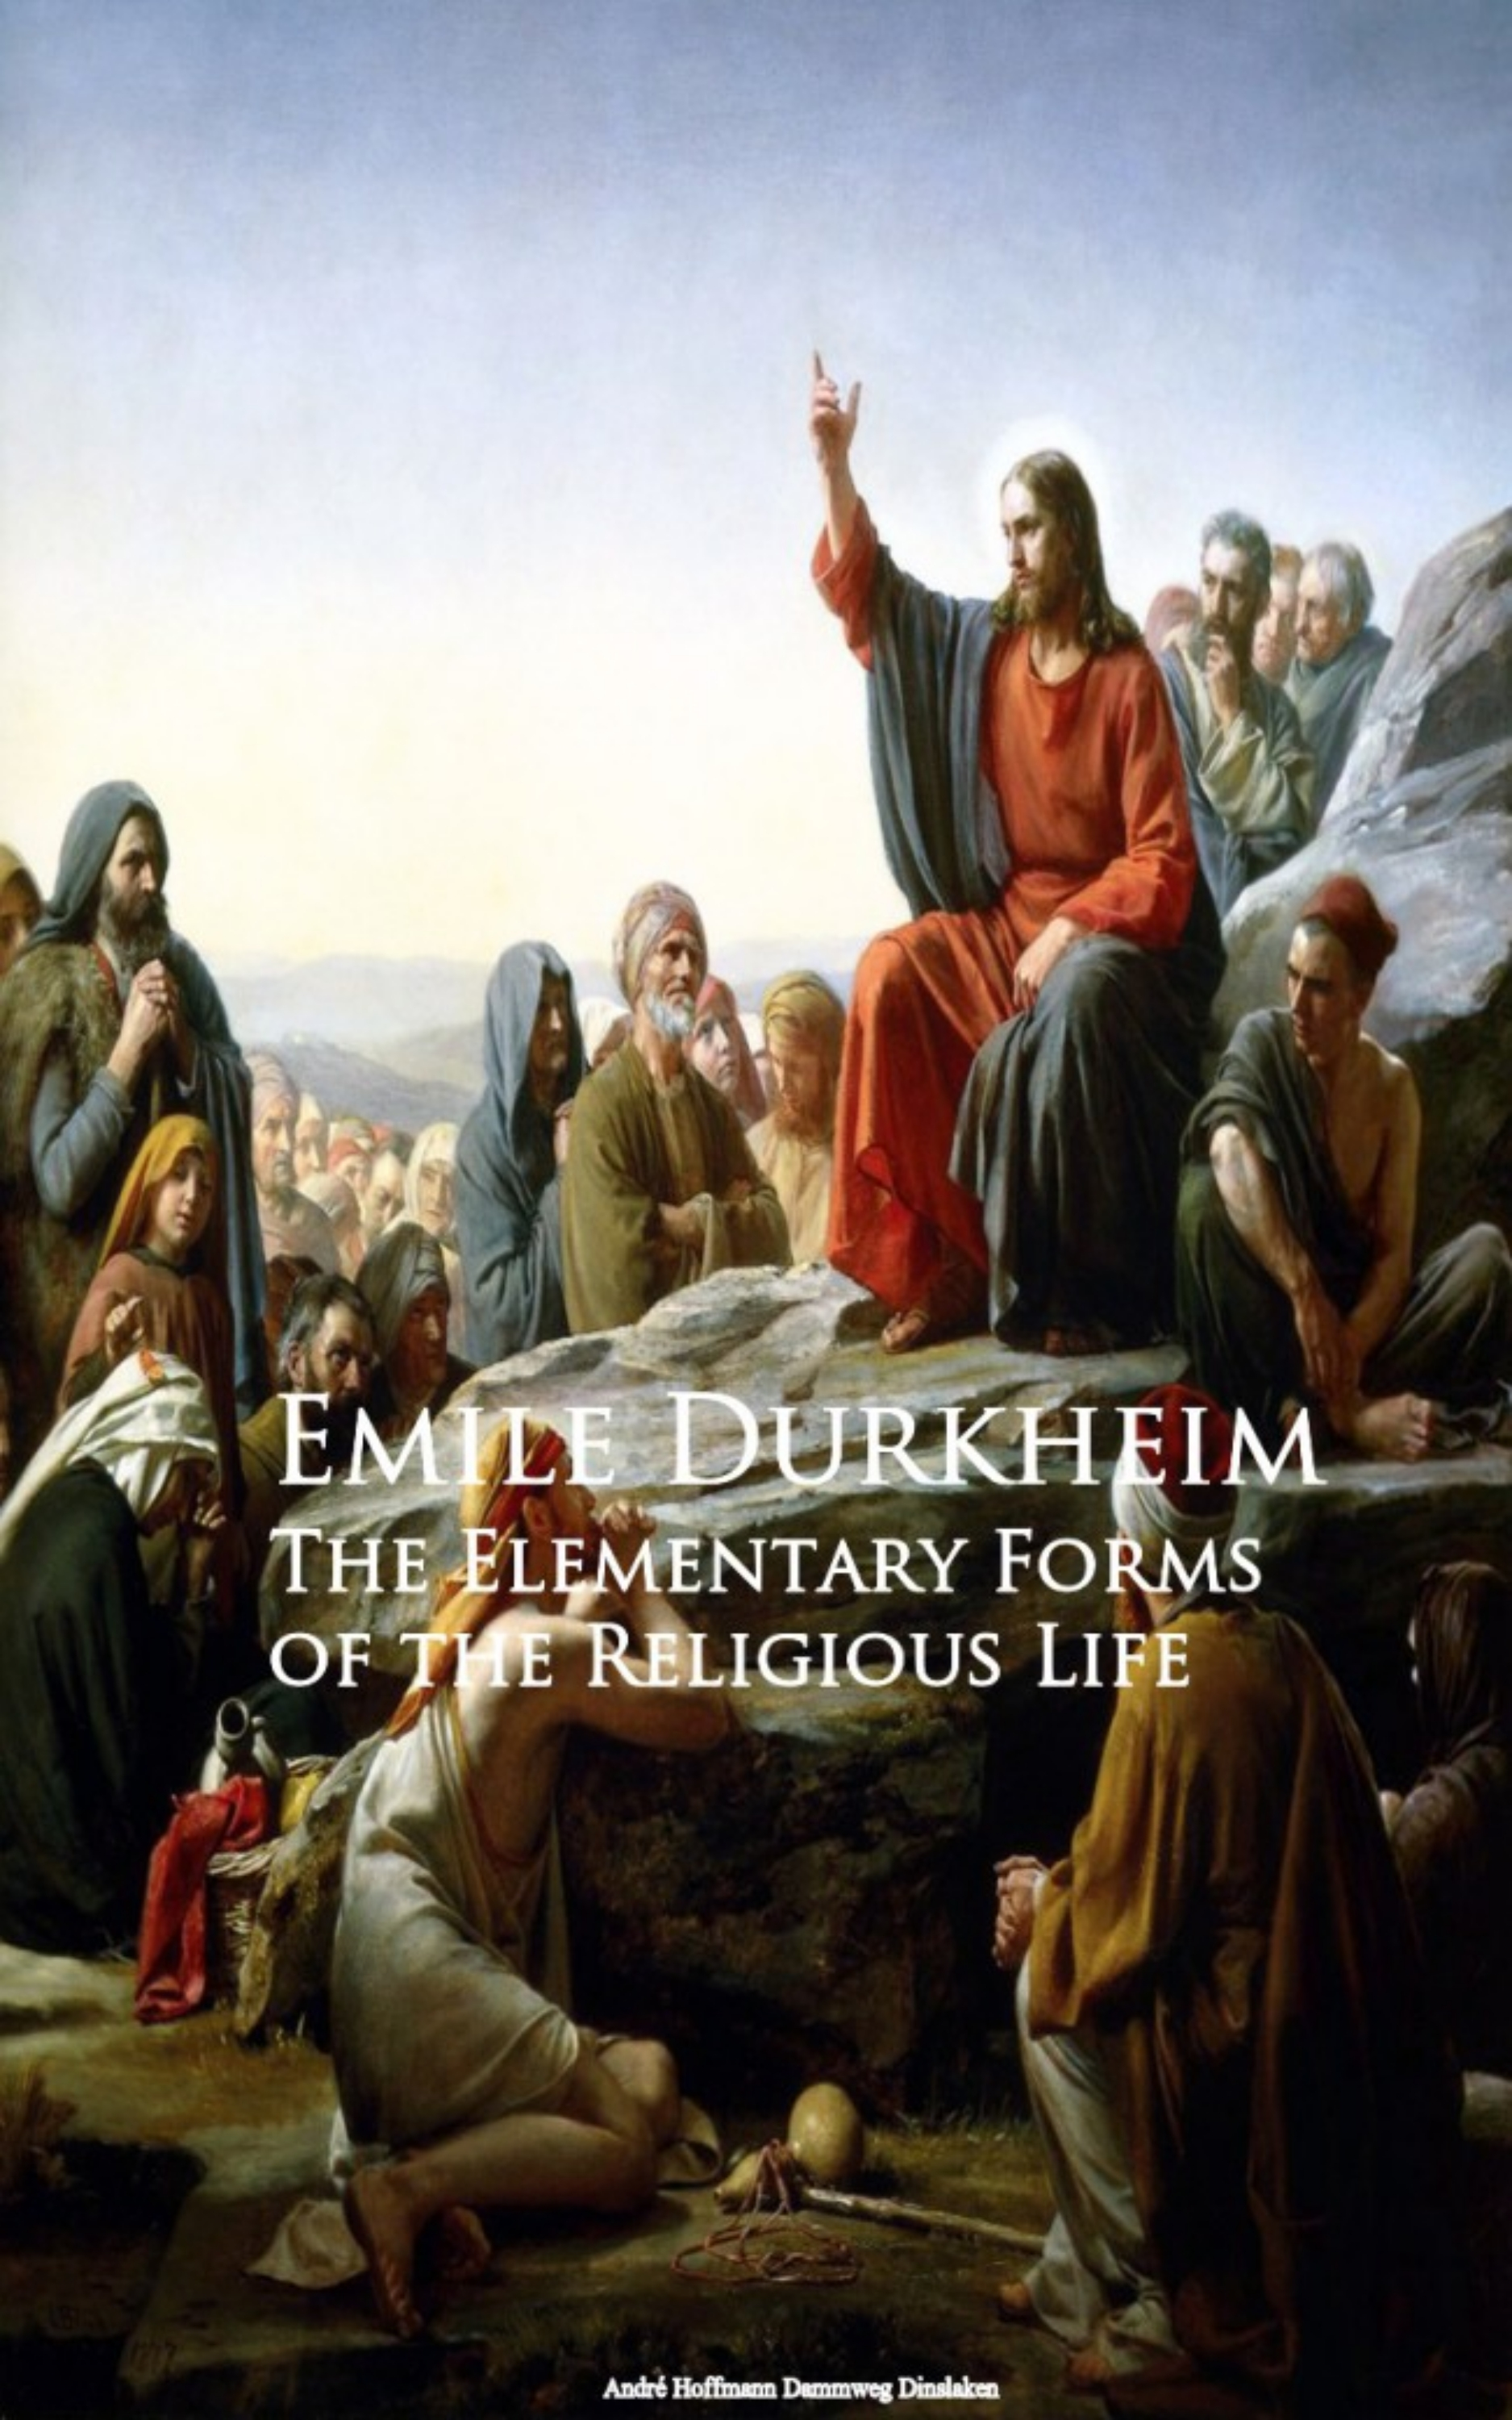 Emile Durkheim The Elementary Forms of the Religious Life patenting of life forms